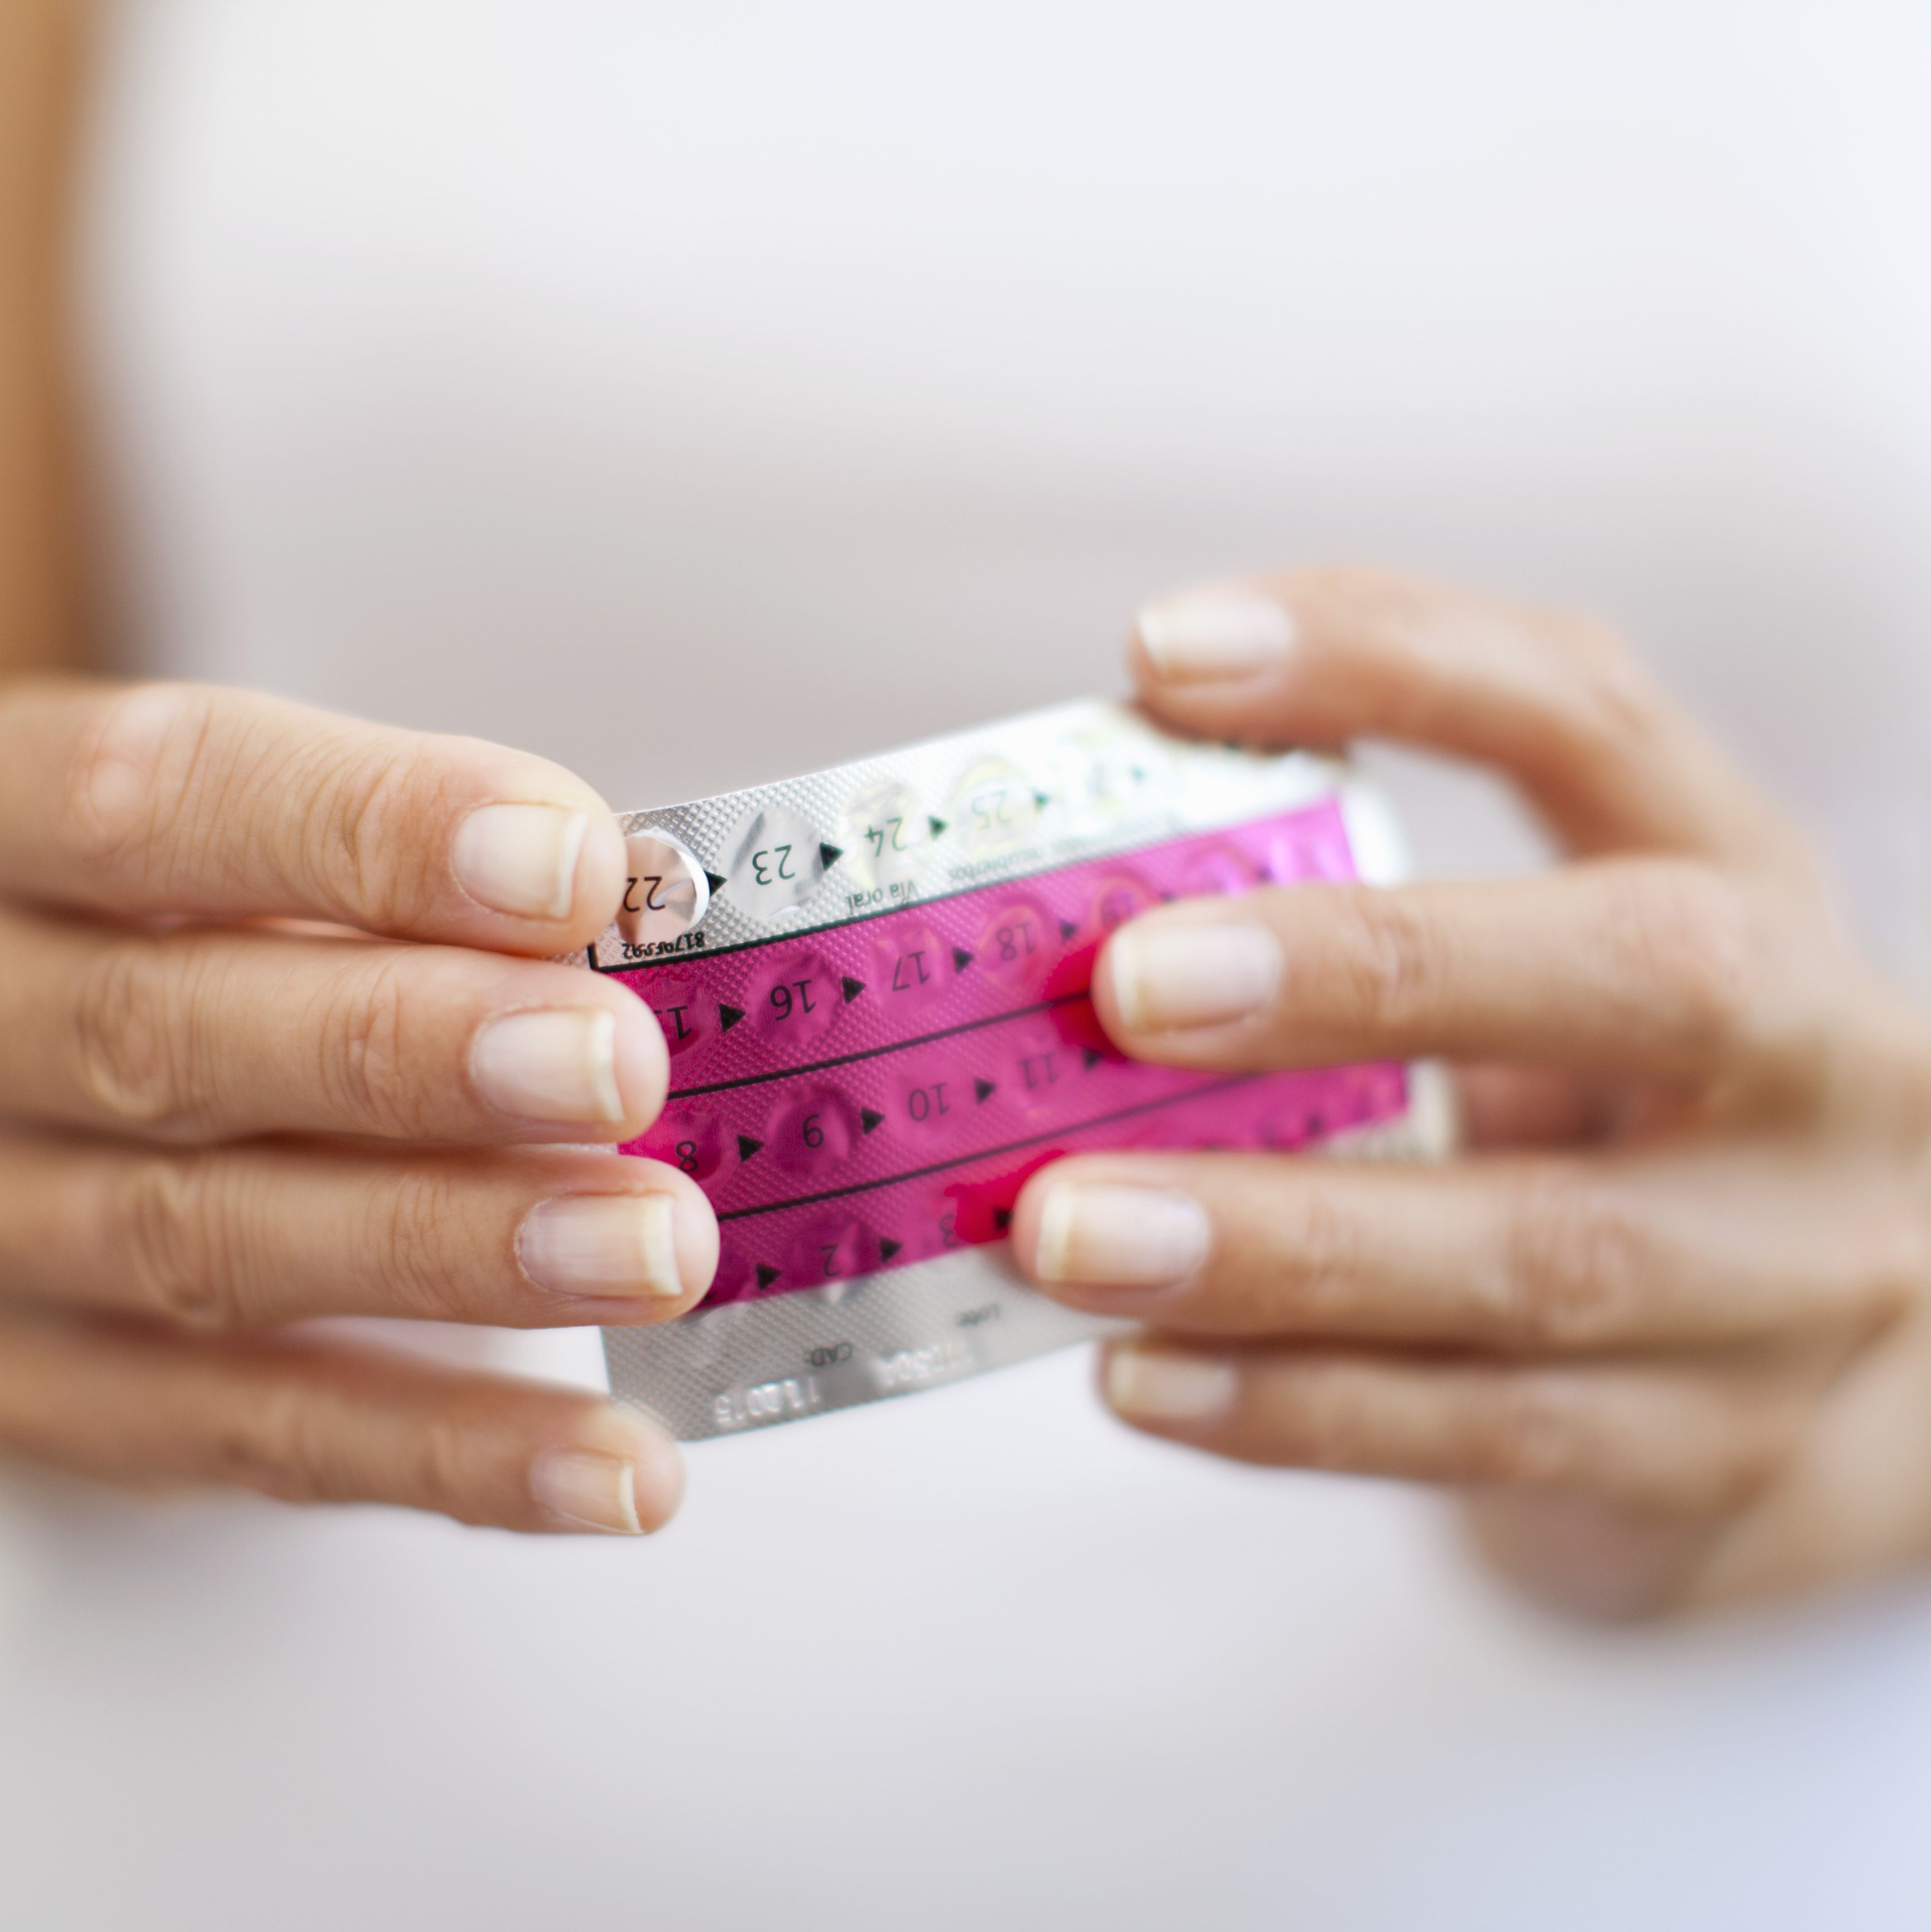 Find the Best Birth Control for You (If Any) Yes, there are very legitimate reasons to decide not to use birth control—but the fact is that it's important to make a conscious decision on the subject one way or the other, rather than leaving yourself open to an unplanned pregnancy . And if you choose to use some form of contraception, you'll want to pick the best one for you by learning about all of your birth control options first.